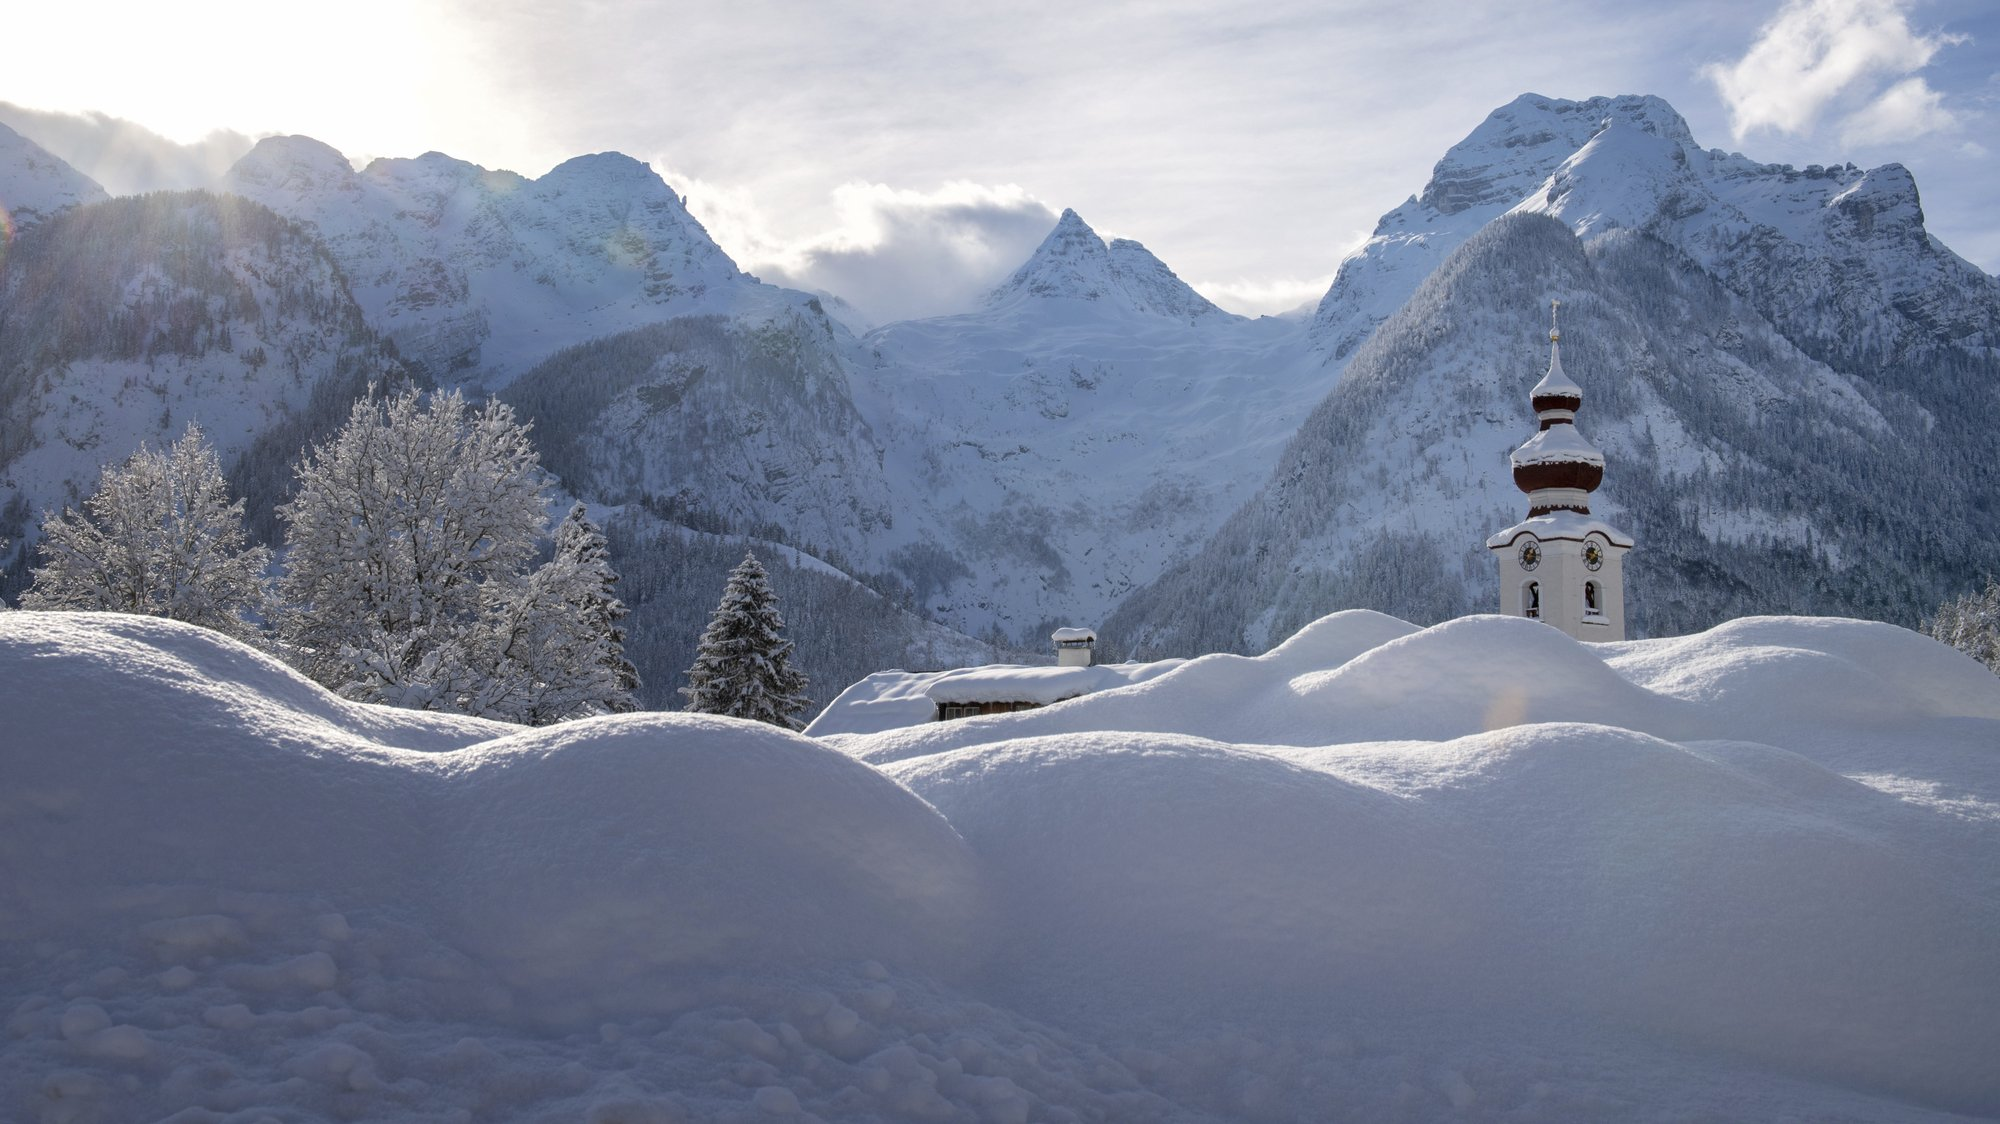 The steeple of the Loferer church is seen through the snow in Lofer, Austrian province of Salzburg on Friday, Jan. 11, 2019 after a heavy snowfall. Photo: AP